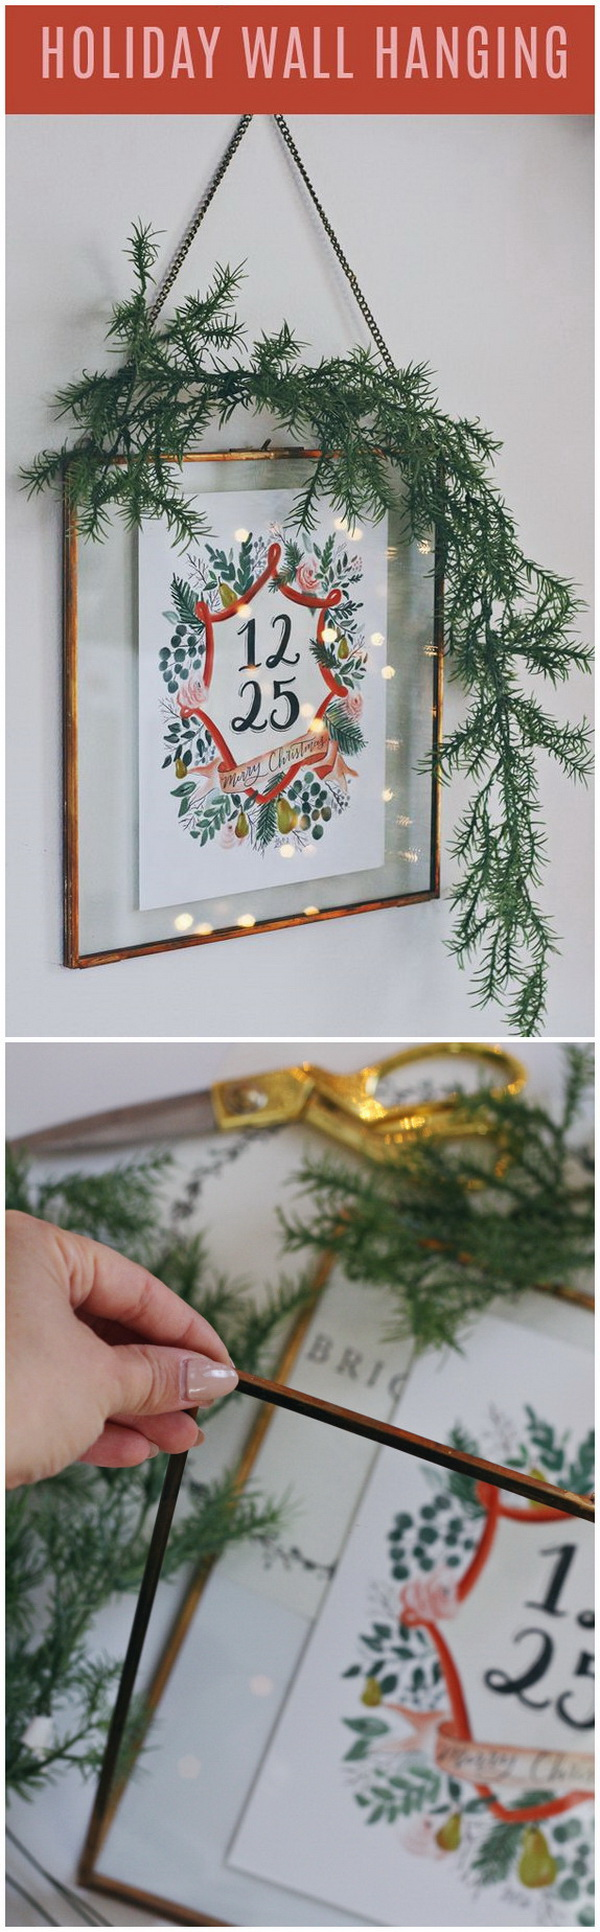 DIY Holiday Wall Hanging. This holiday wall hanging is made from a Hearth & Hand brass frame! It looks simple, but makes for a really unique, modern display in any of your room for this holiday season!